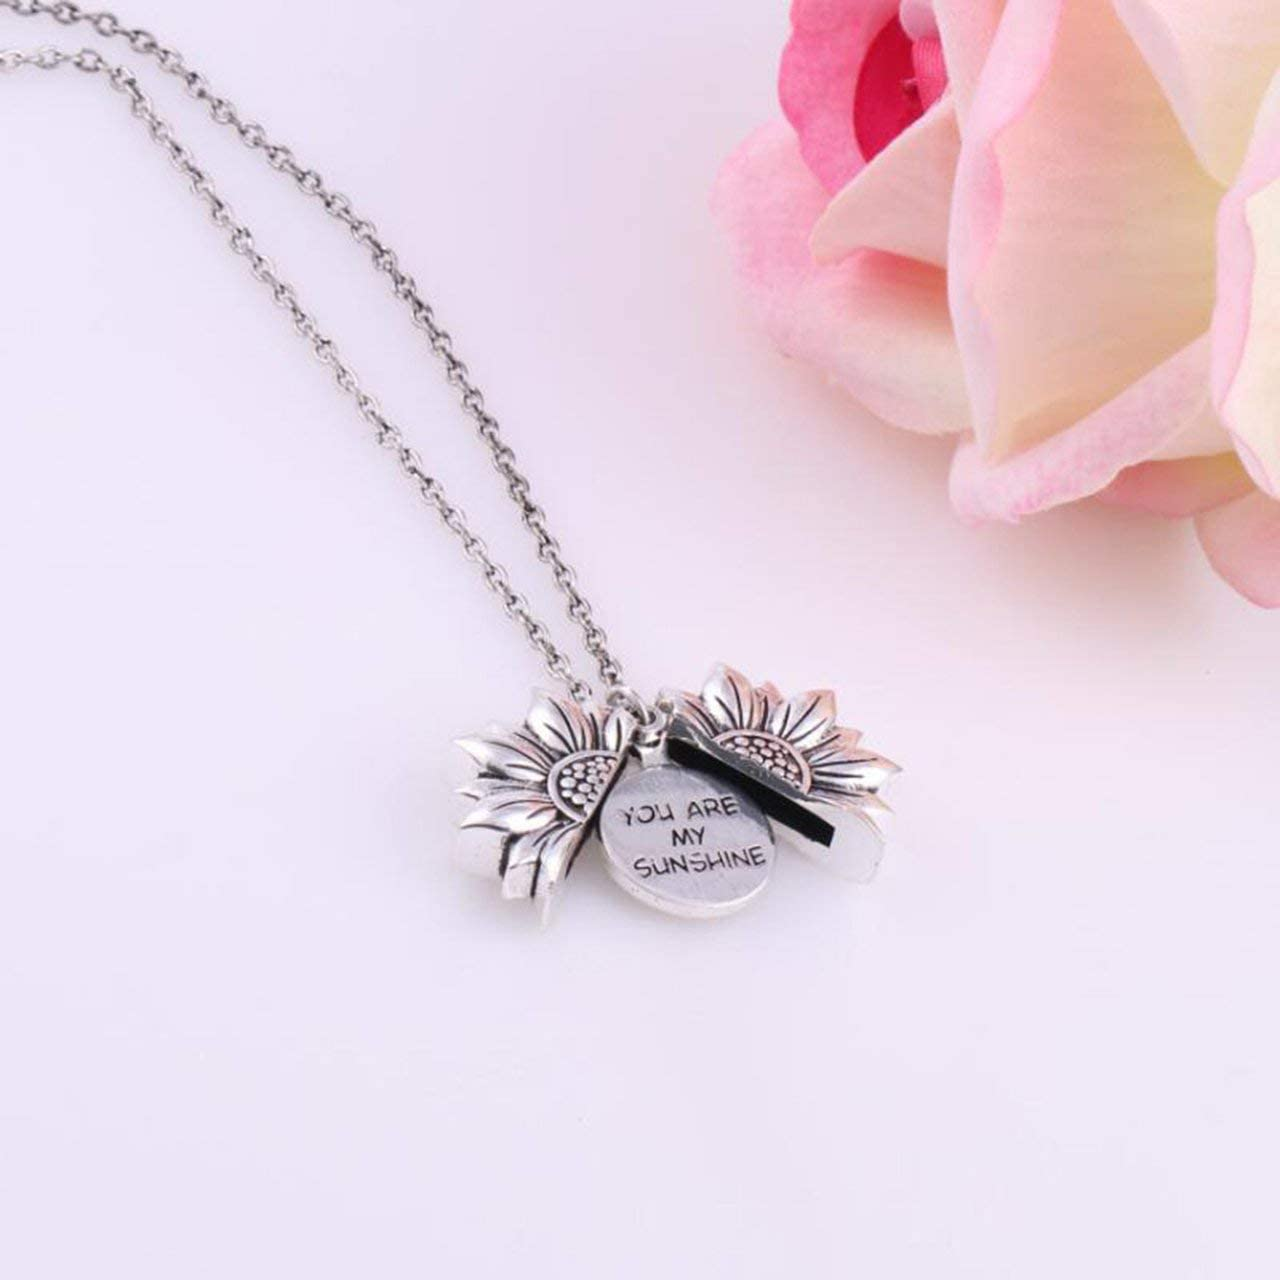 European and American Popular New Necklace Women Sunflower Double-Layer Lettering Necklace Alloy Flower Short Clavicle Chain